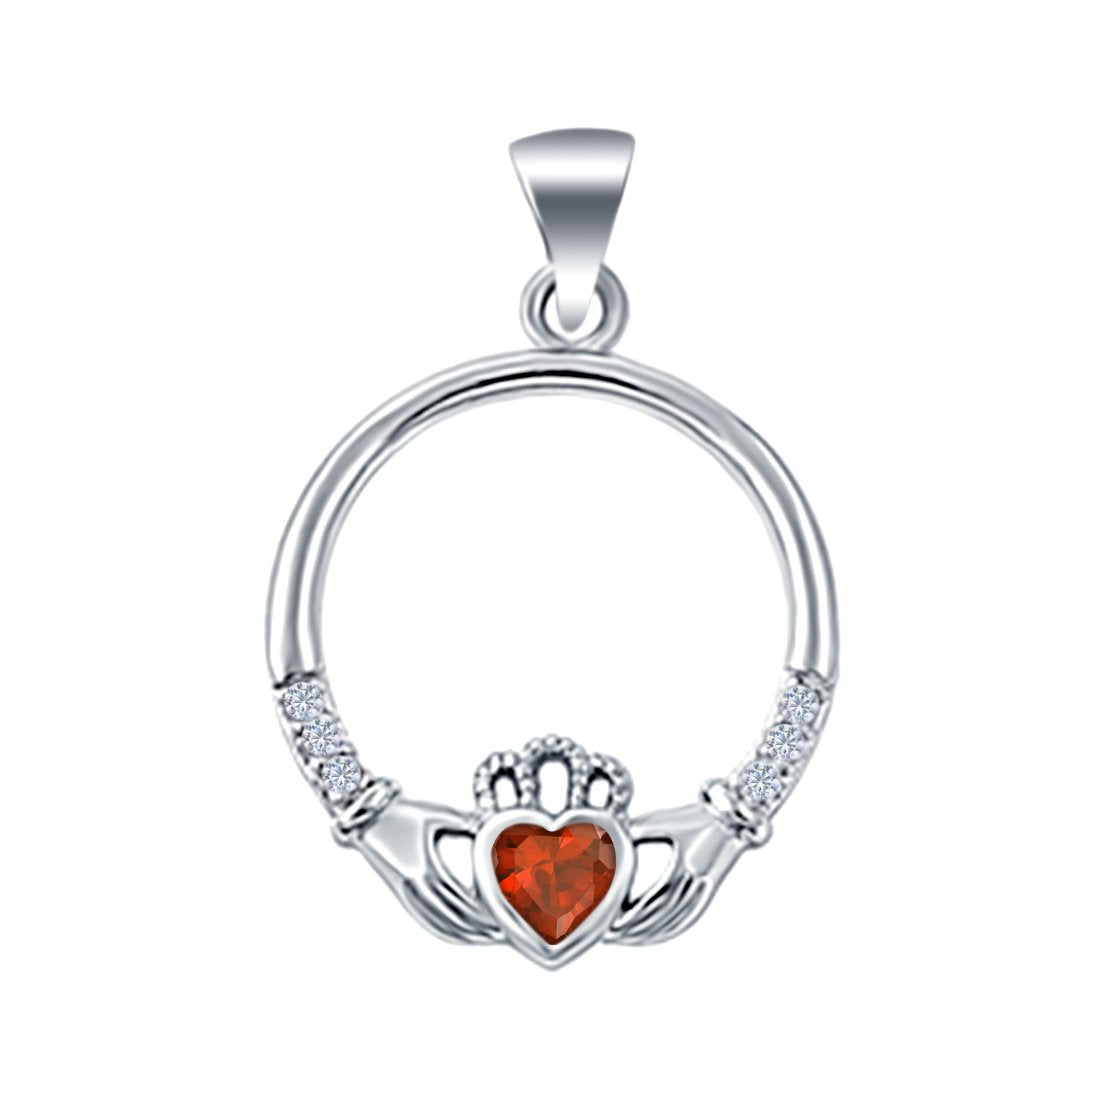 Heart Claddagh Charm Pendant Simulated Garnet CZ 925 Sterling Silver (21mm)